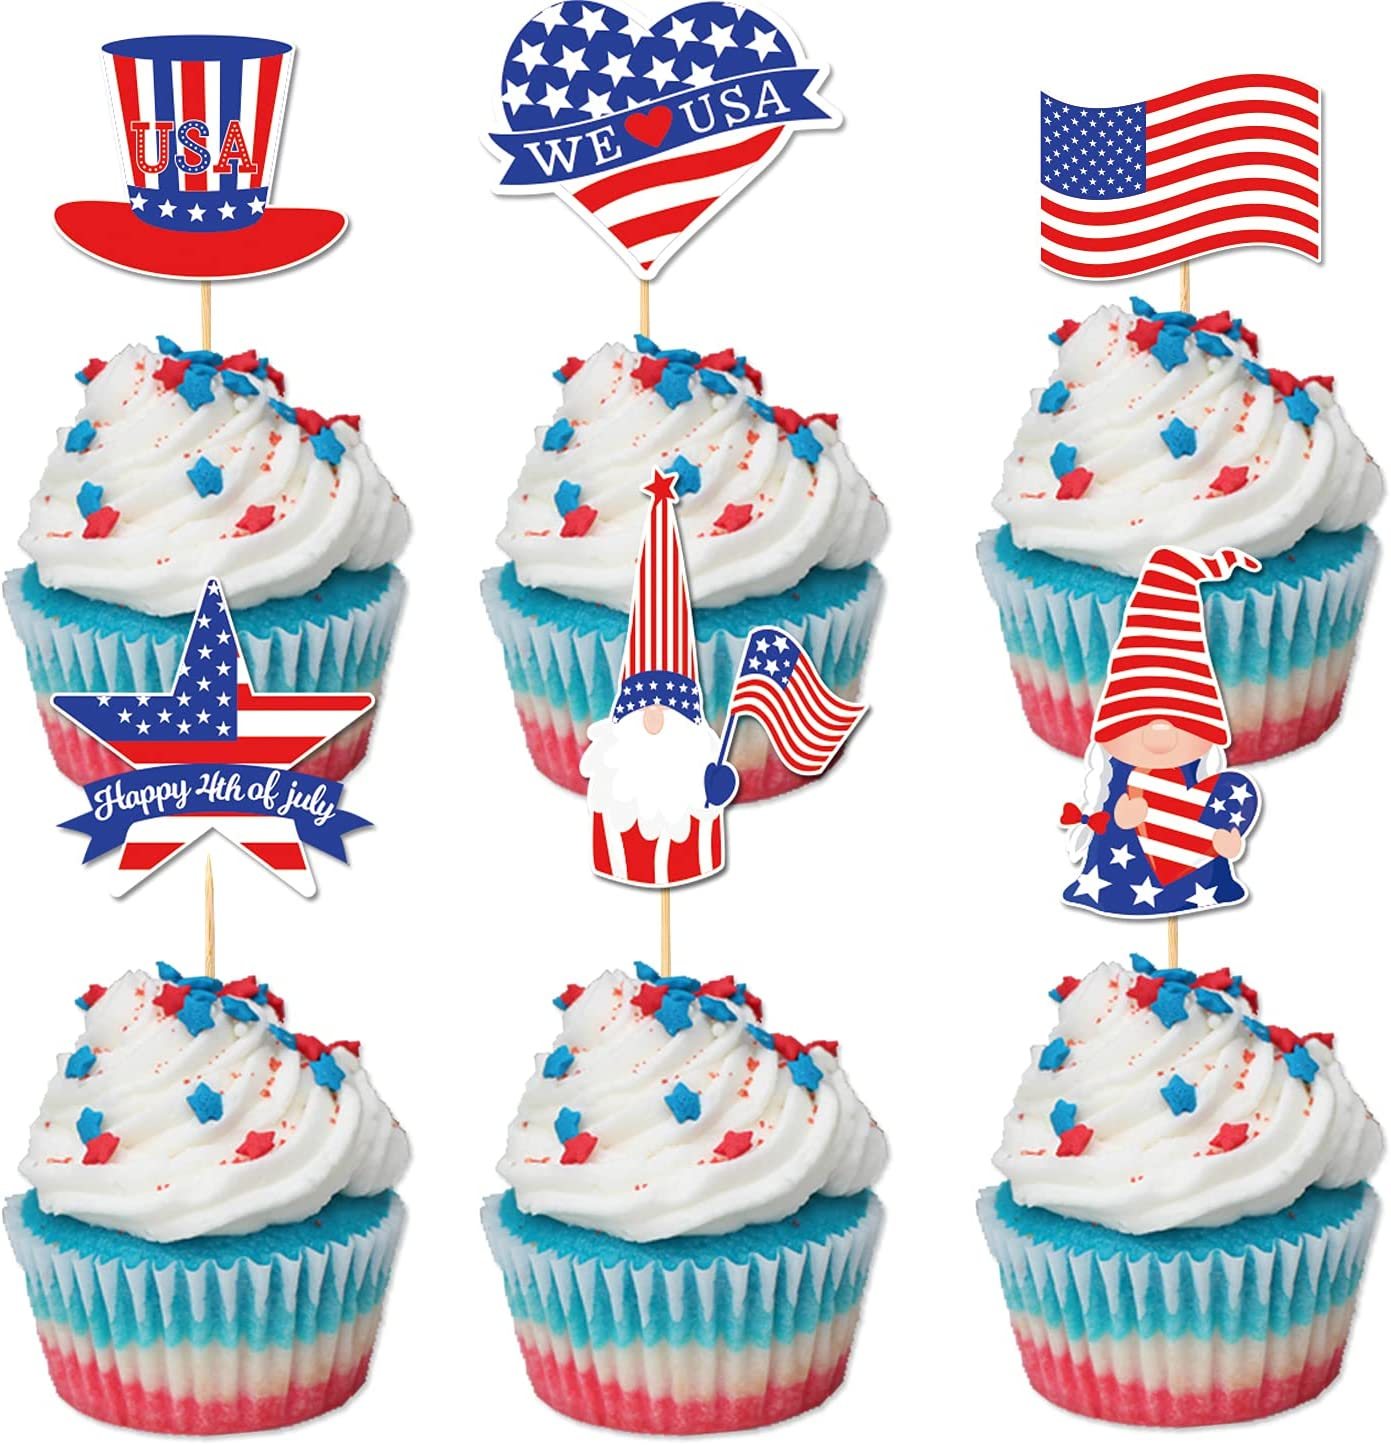 24Pcs 4th of July Cupcake Toppers - Patriotic Gnome American Flag Food Fruit Picks for Fourth of July Birthday Party Cake Decoration, Dessert Décor